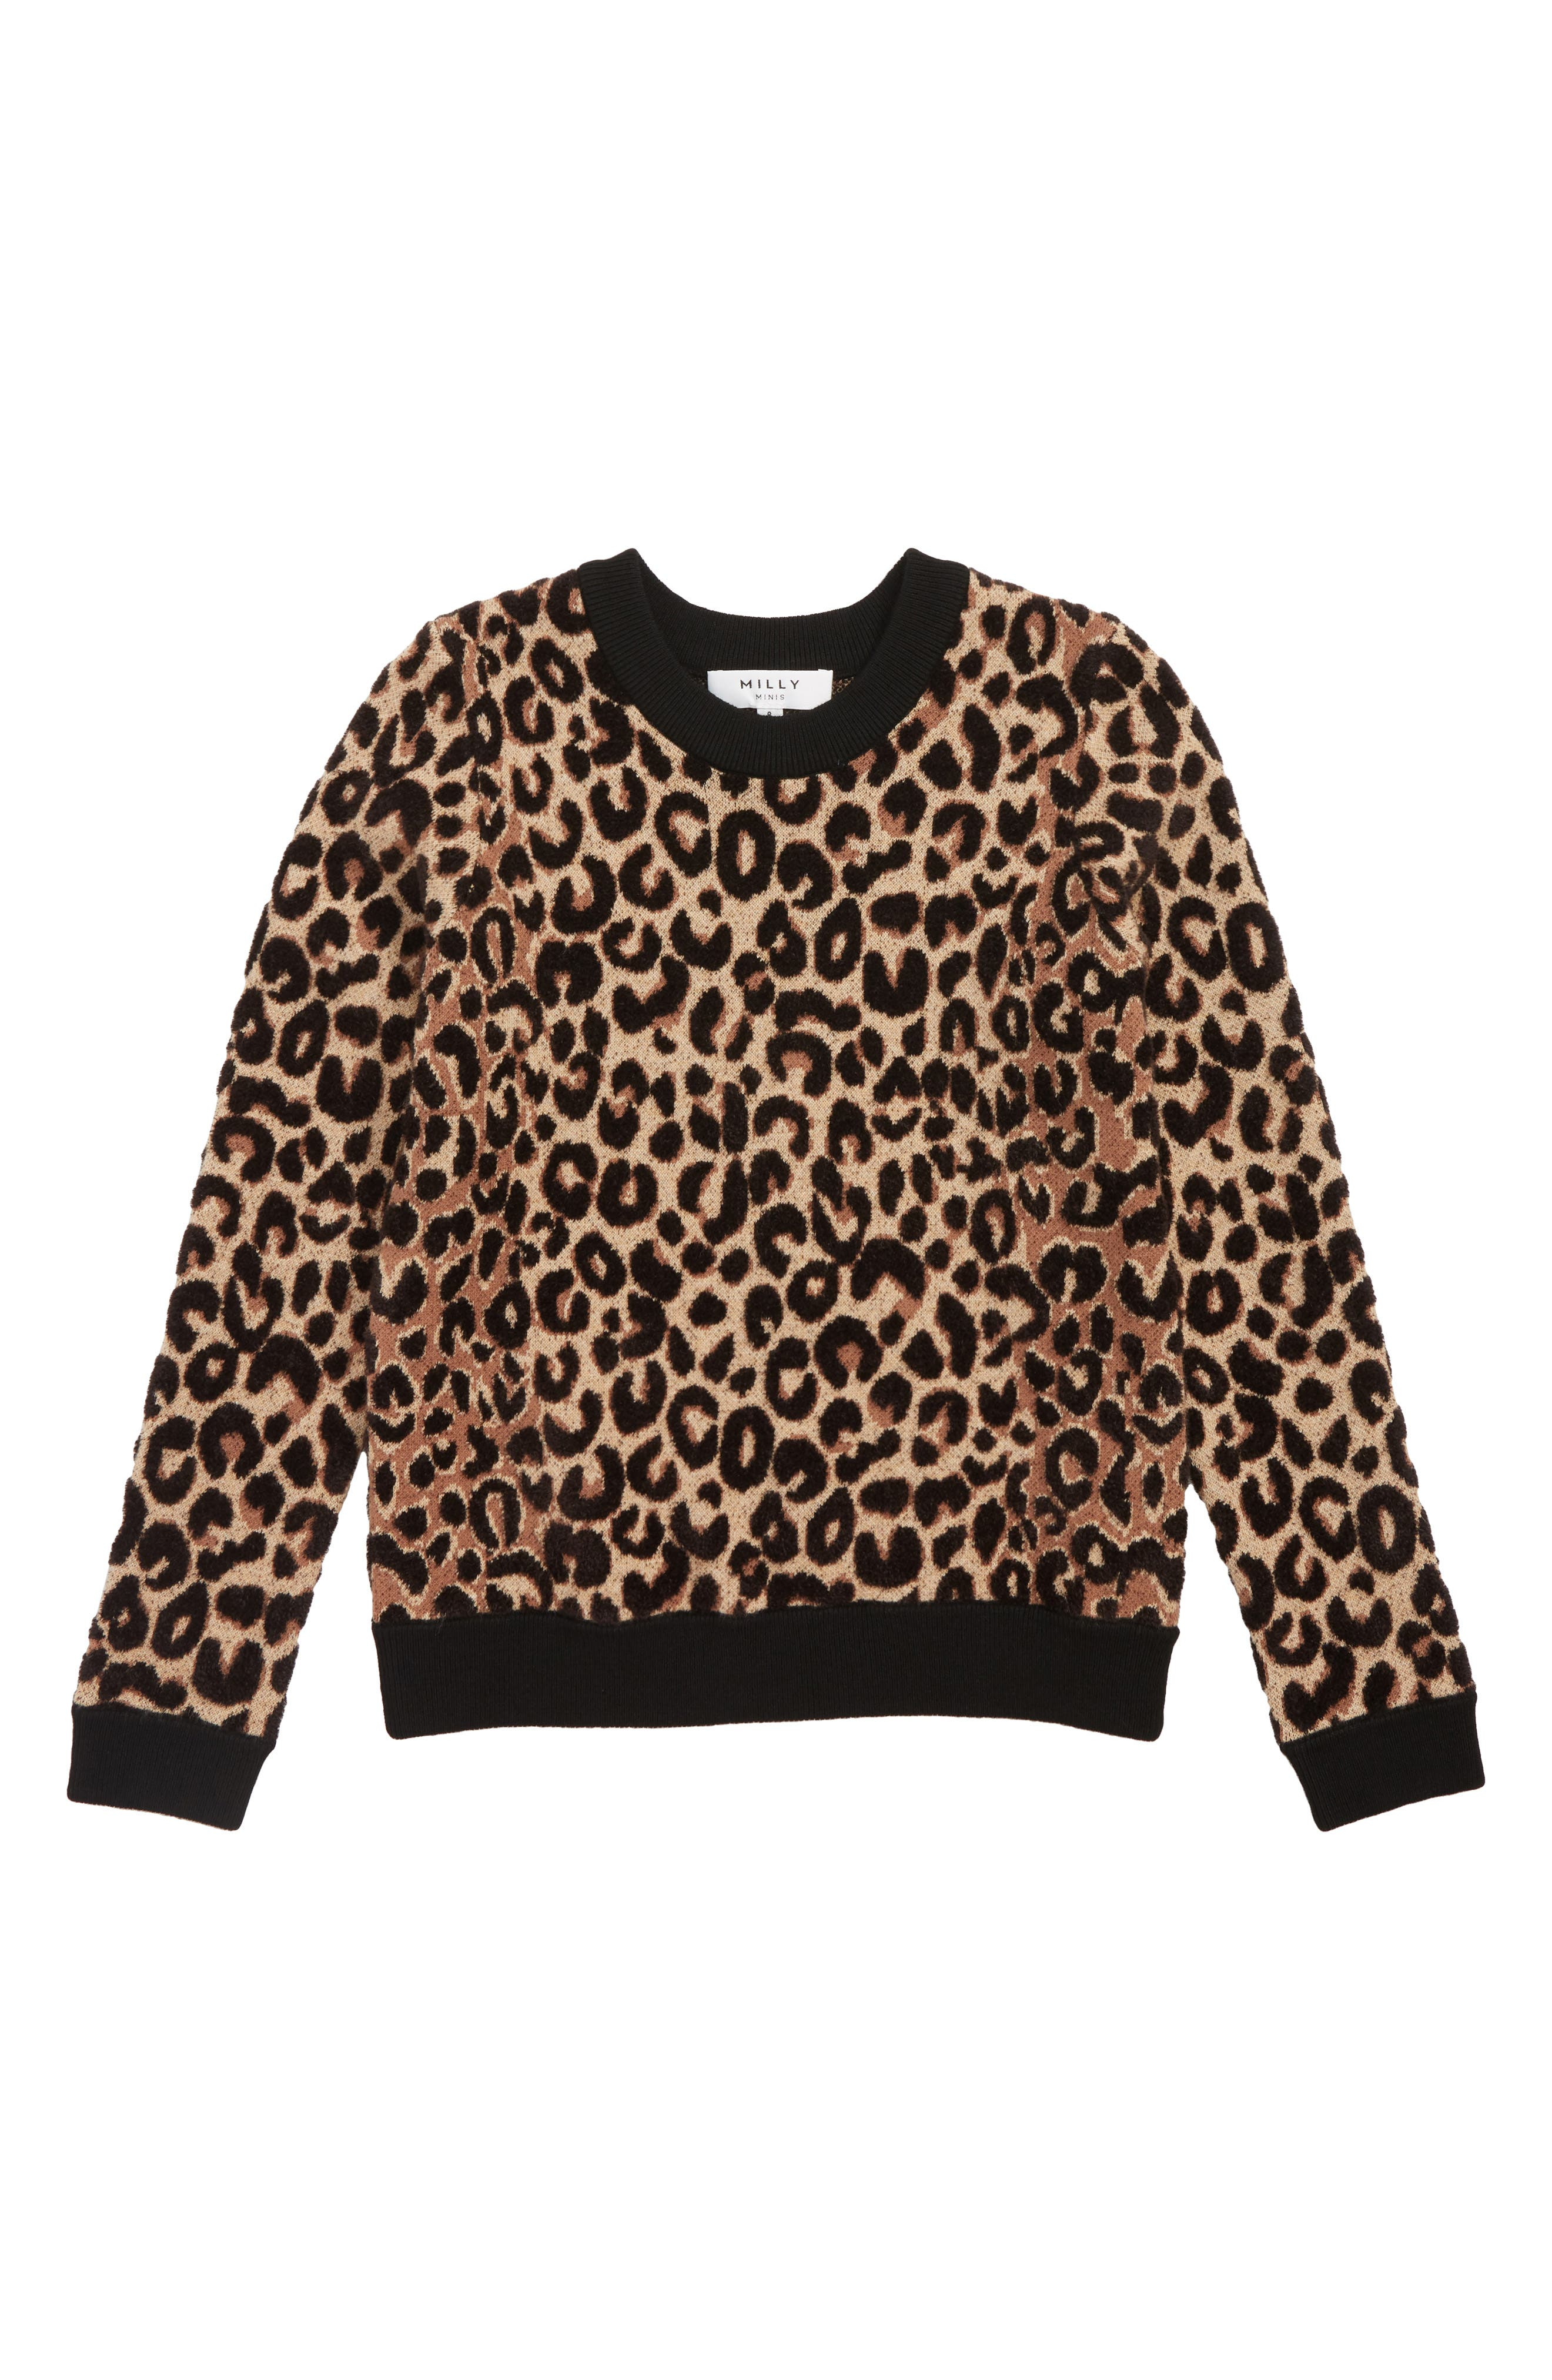 Girls Milly Minis Textured Leopard Sweater Size 14  Brown